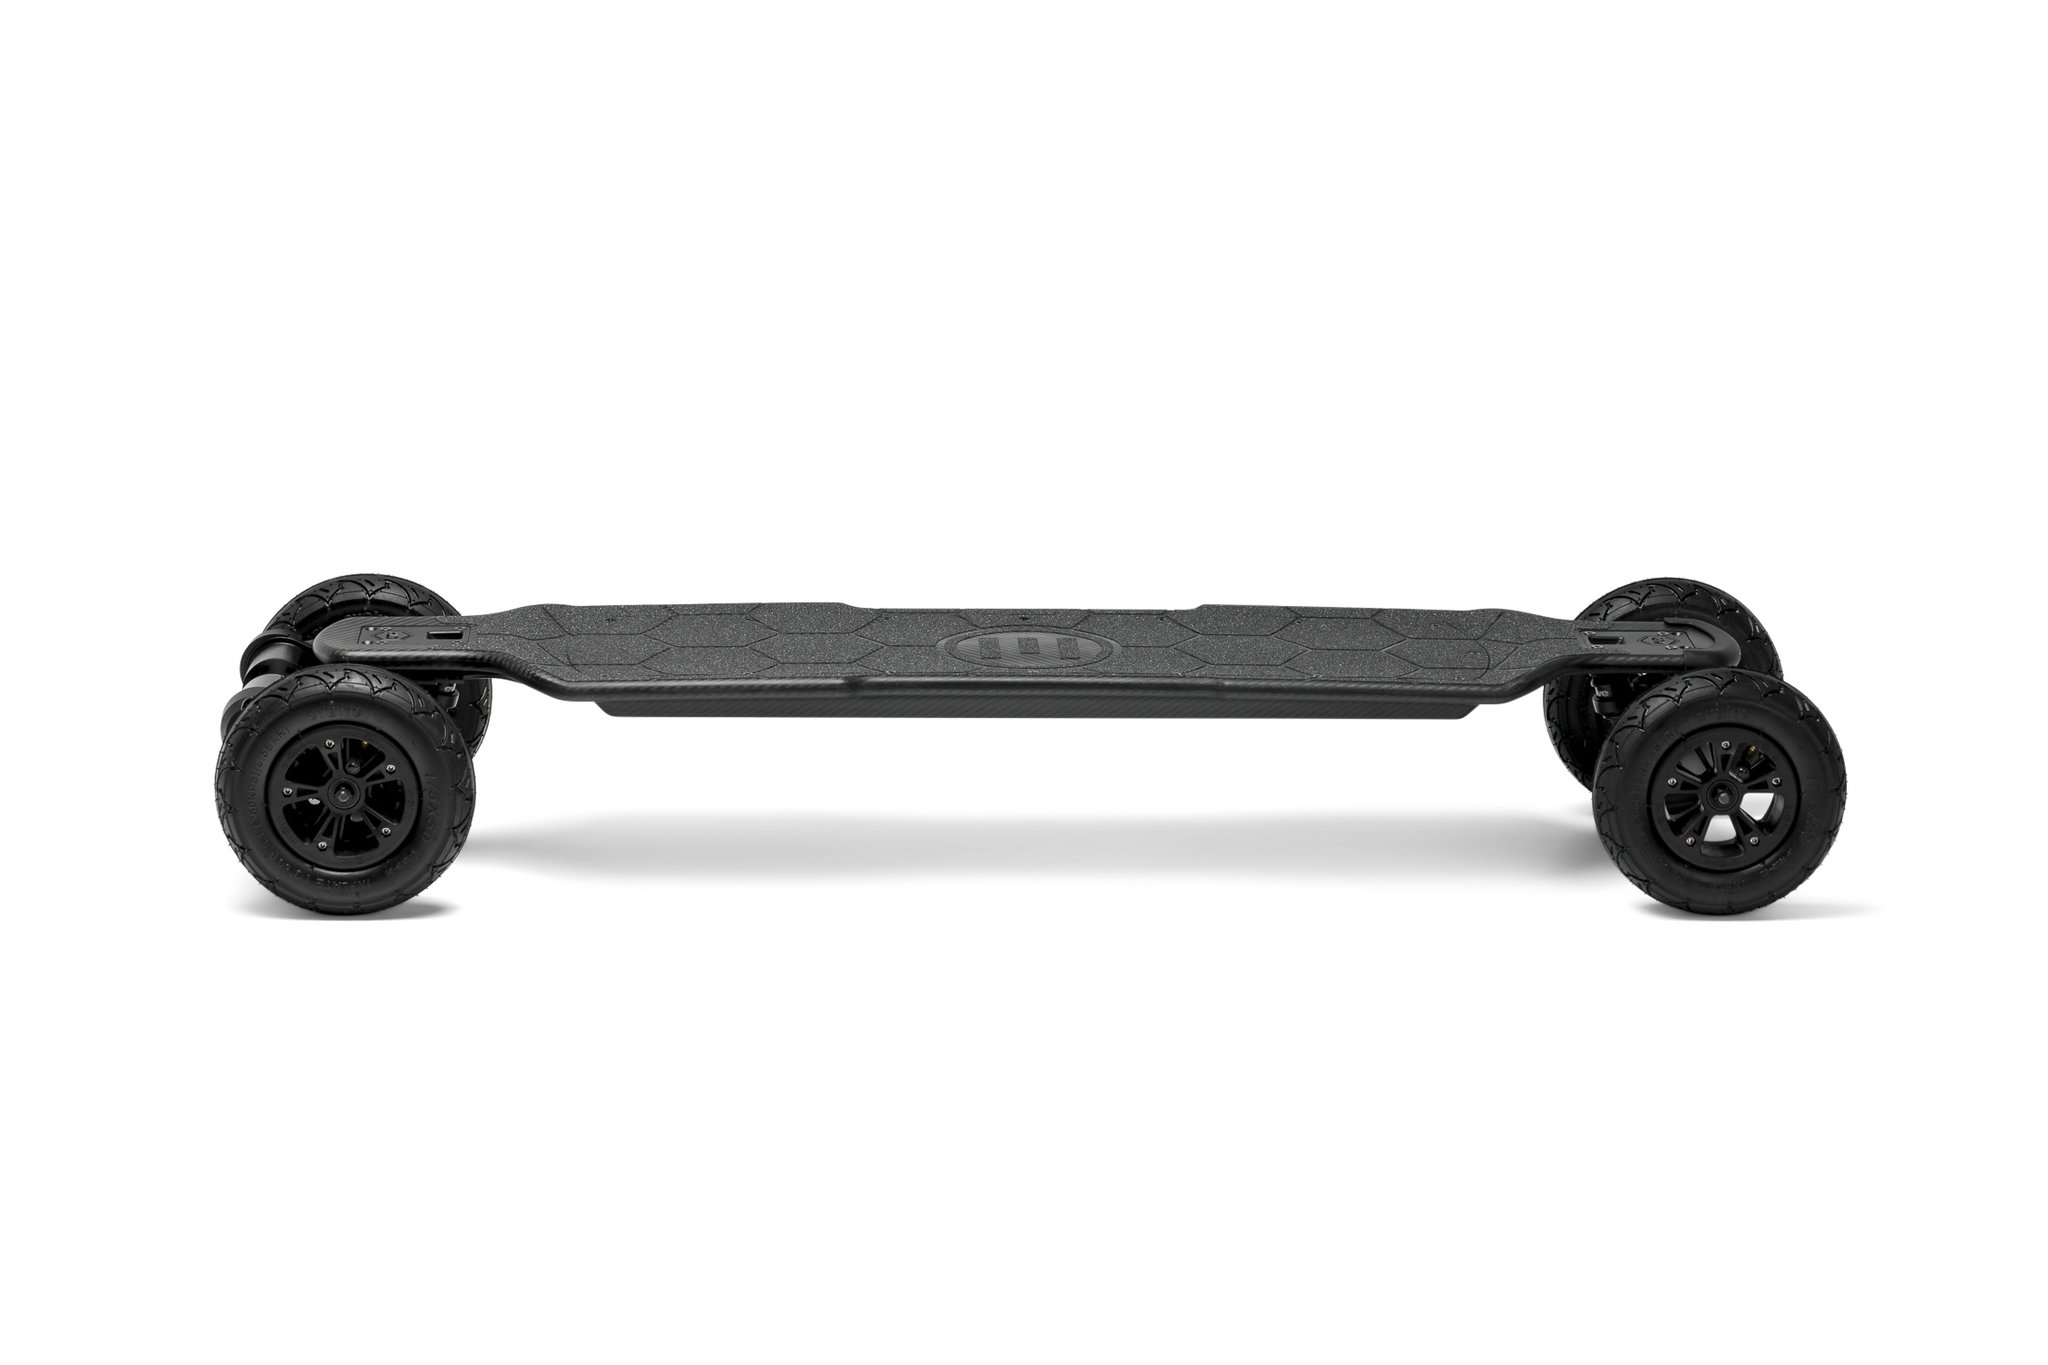 Evolve Carbon GTR All Terrain electric skateboard side profile on a white background